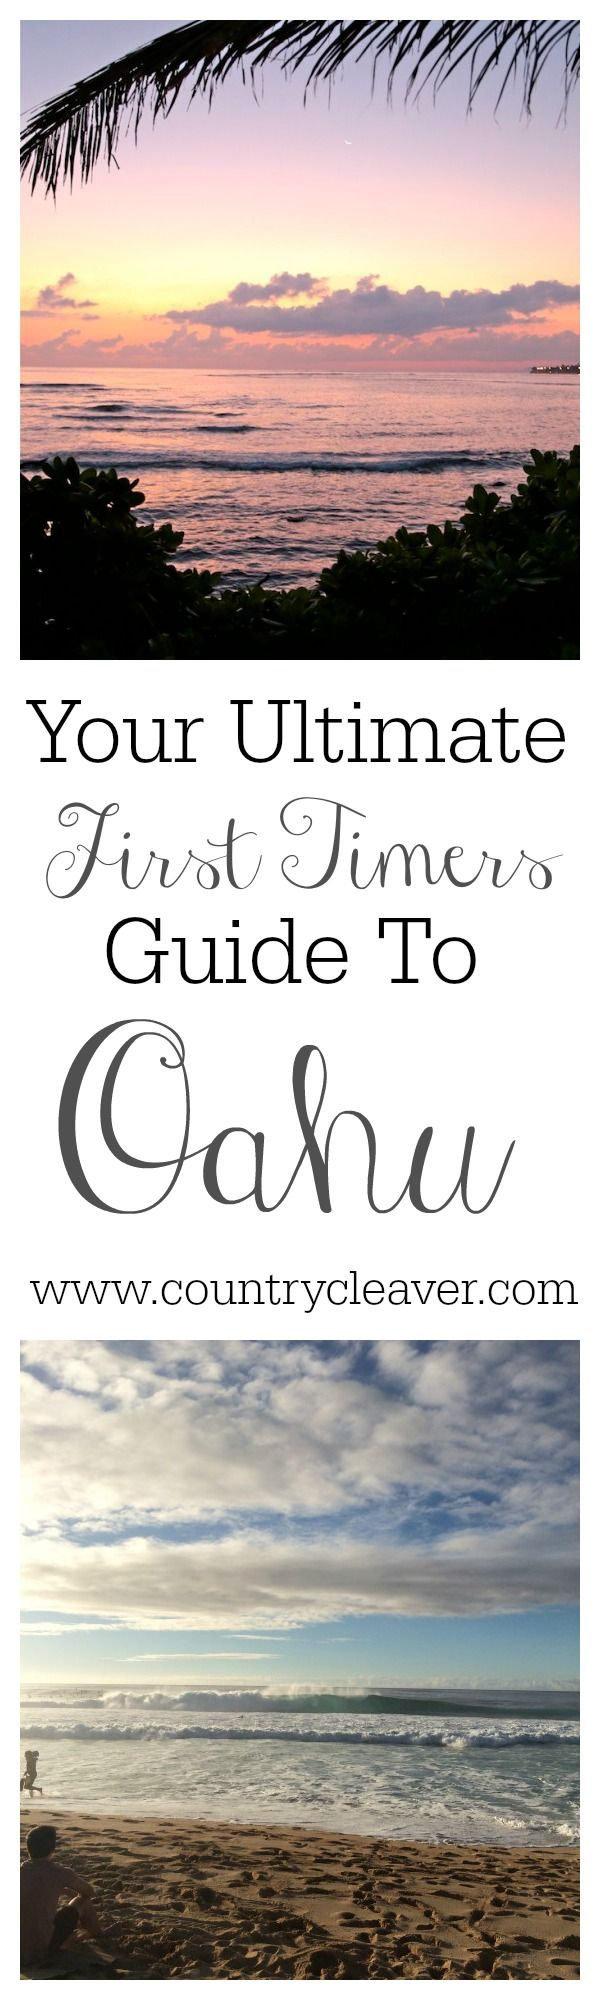 First Timers Guide To Oahu